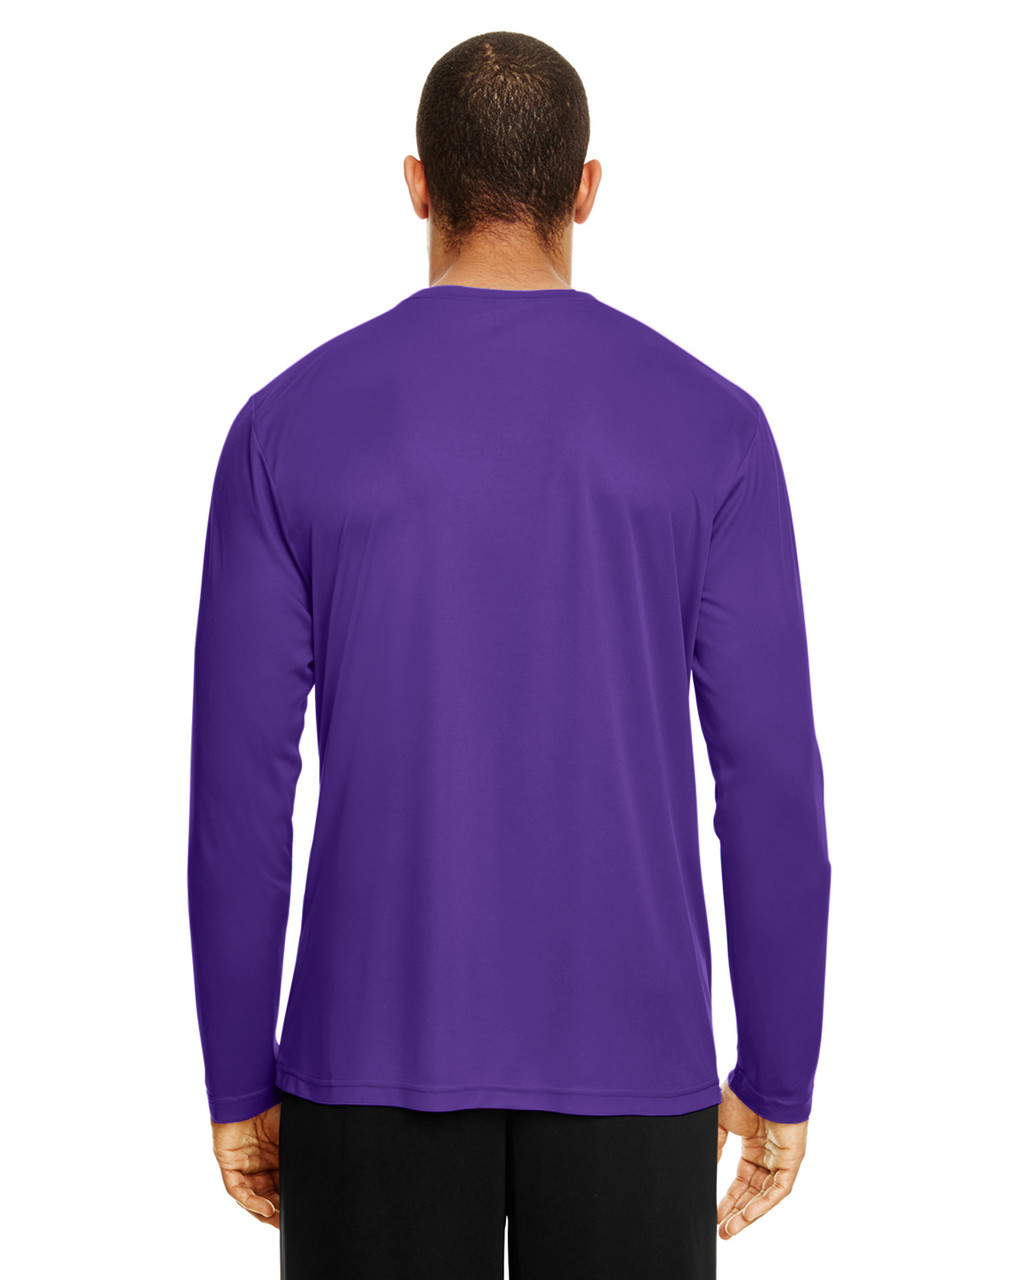 Sport Purple, Back - TT11L Team 365 Men's Zone Performance Long Sleeve T-Shirt | BlankClothing.ca